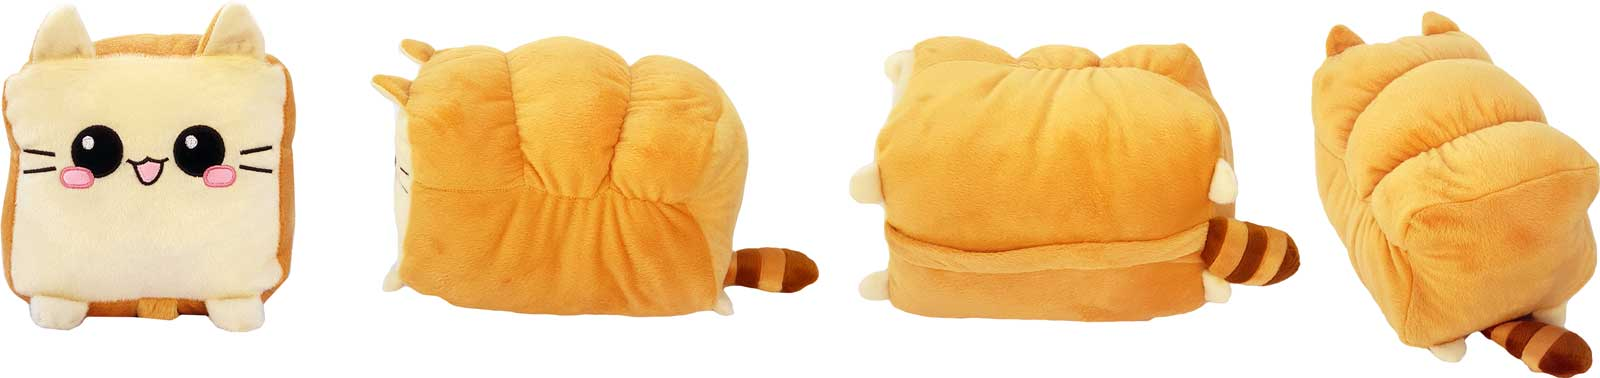 Toast Cat Plush Pillow Toy Cushion